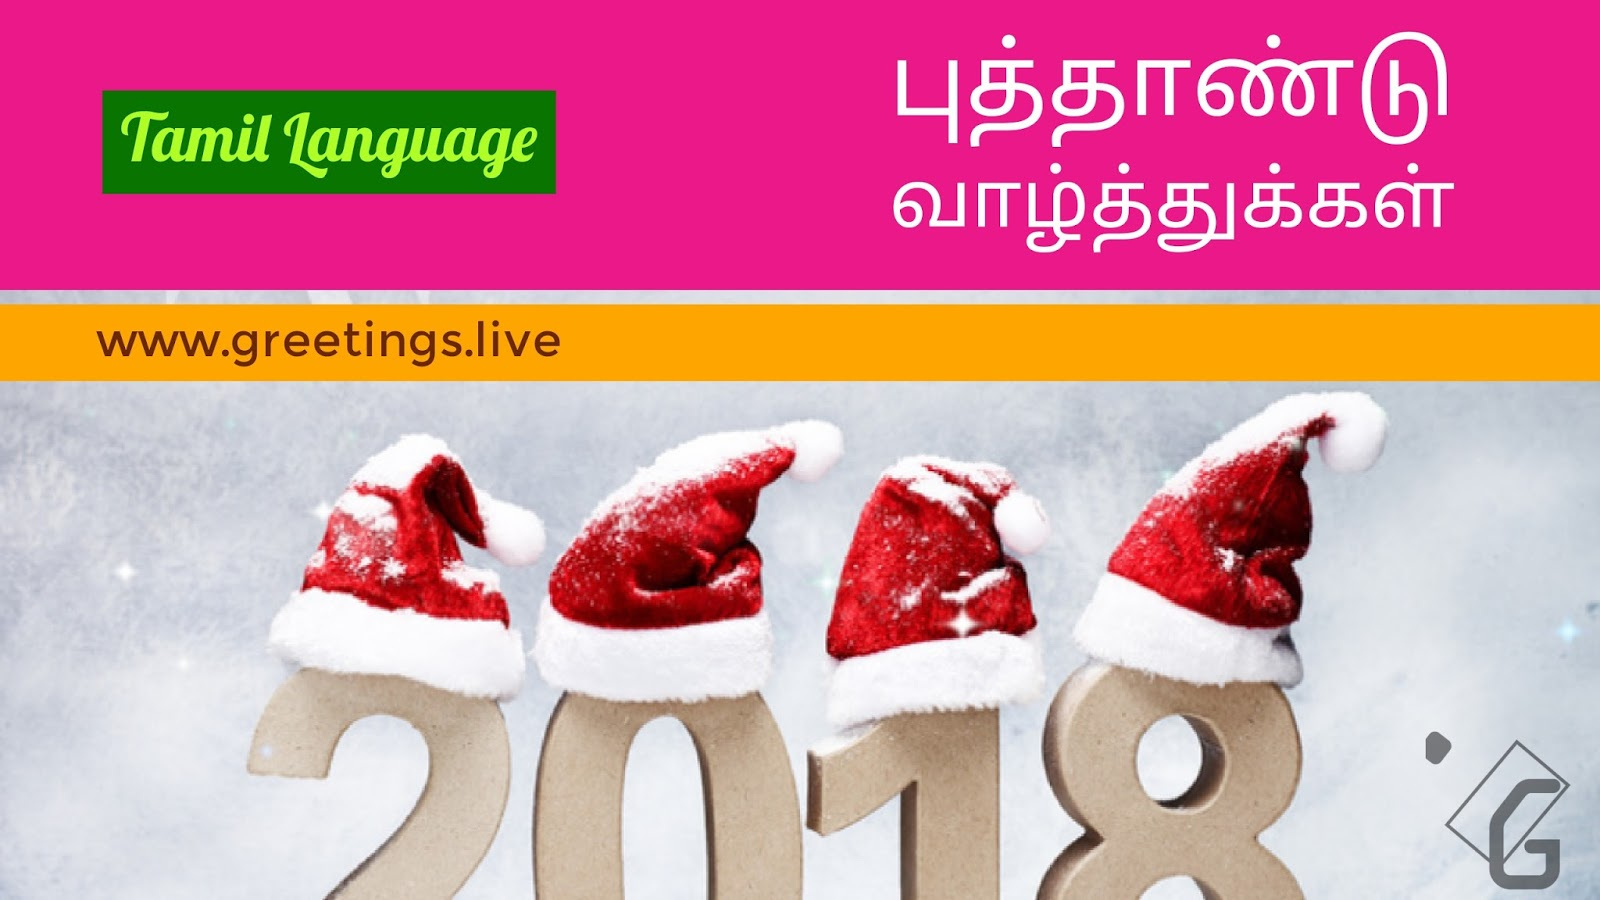 Greetingsve hd images love smile birthday wishes free download tamil new year wishes 2018 kristyandbryce Gallery